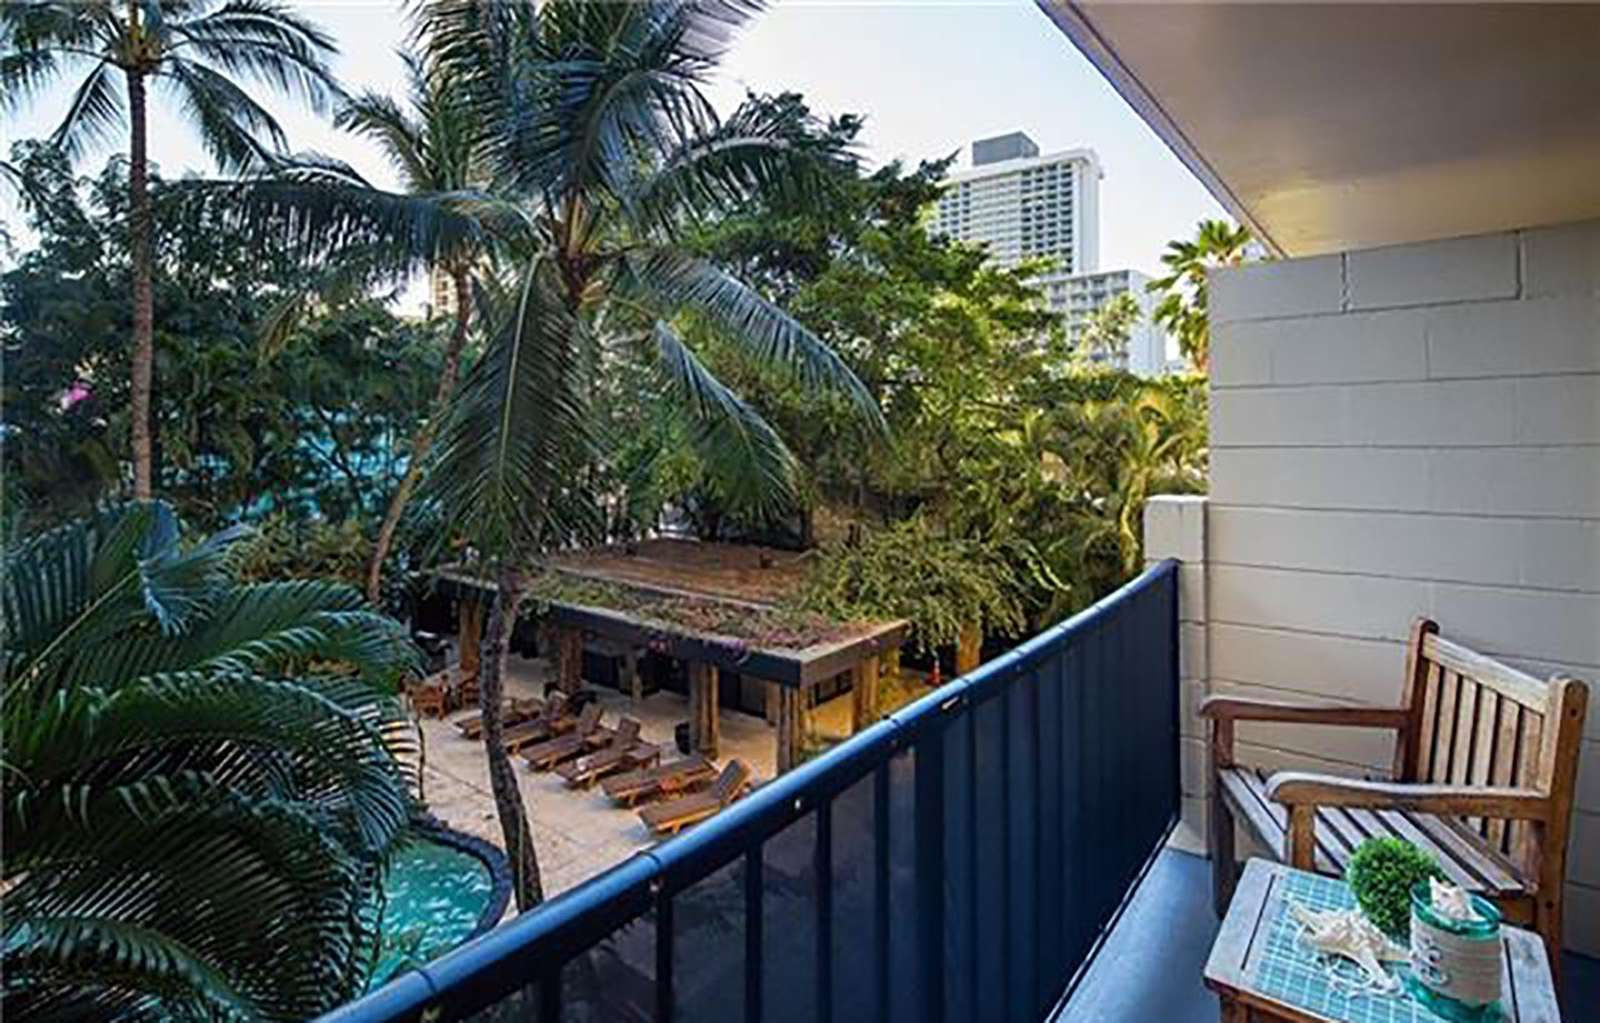 Your private lanai overlooking the pool